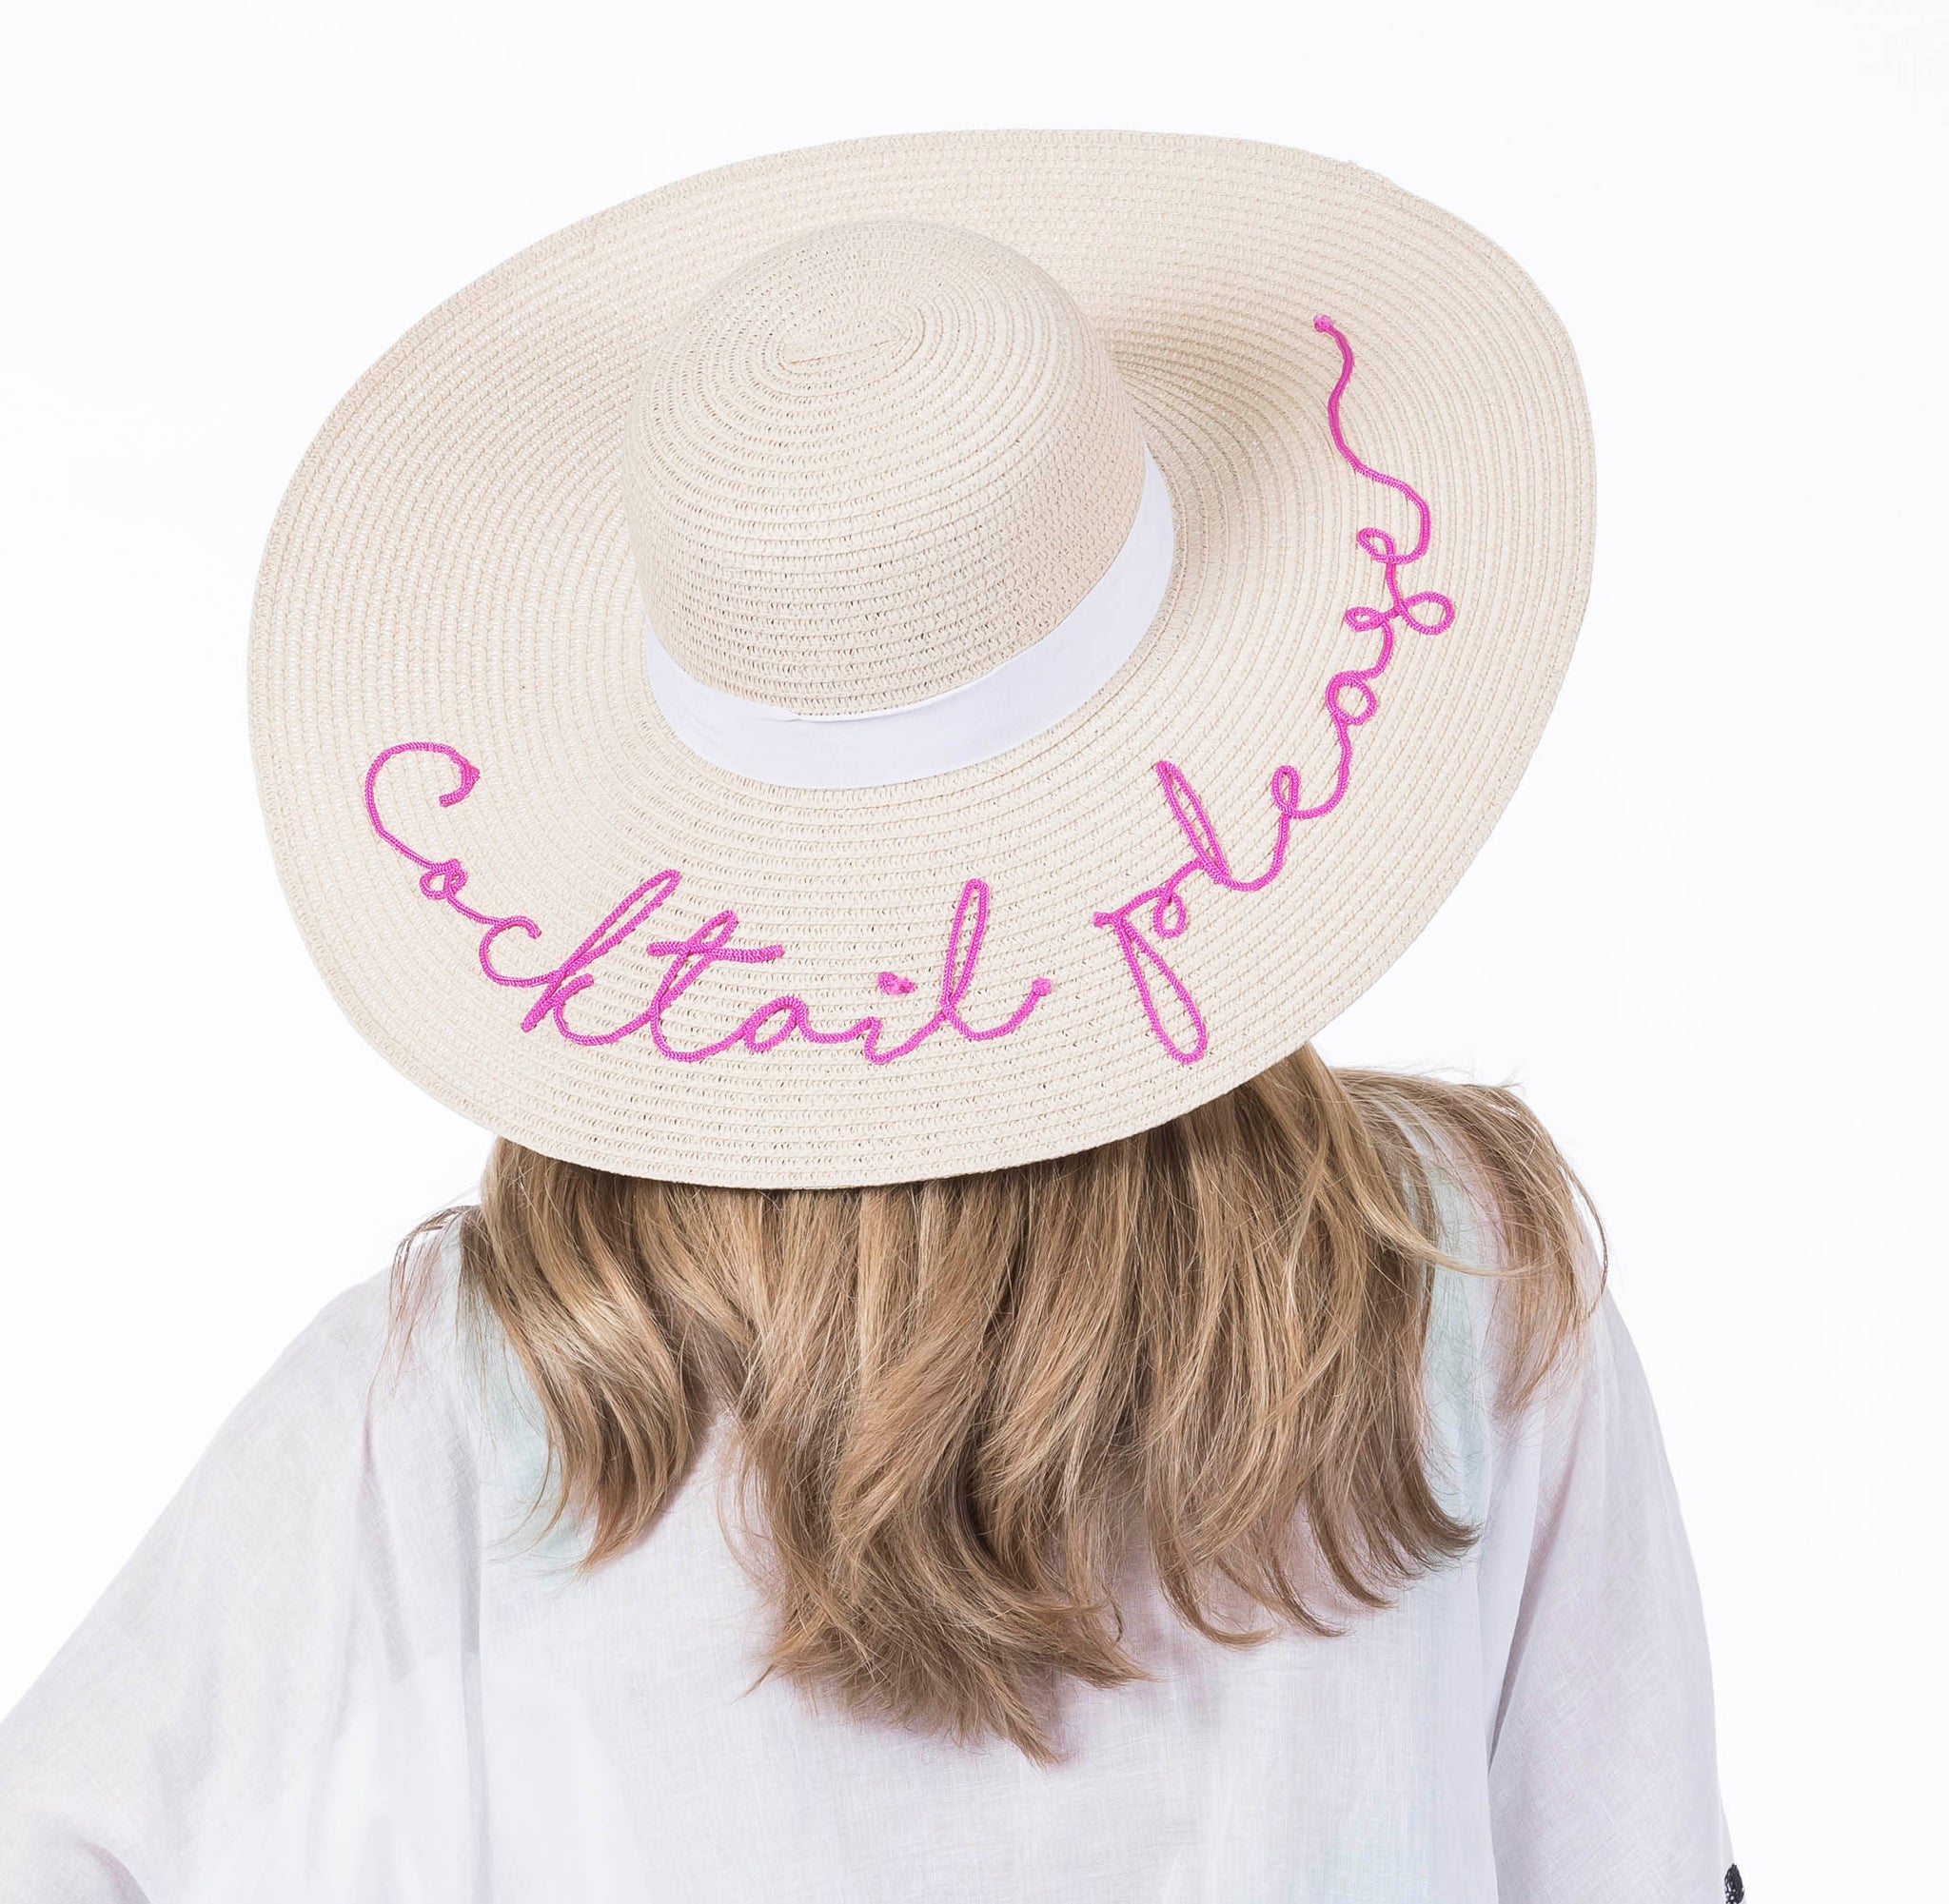 Cocktail Please Wholesale Sun Hats for Women